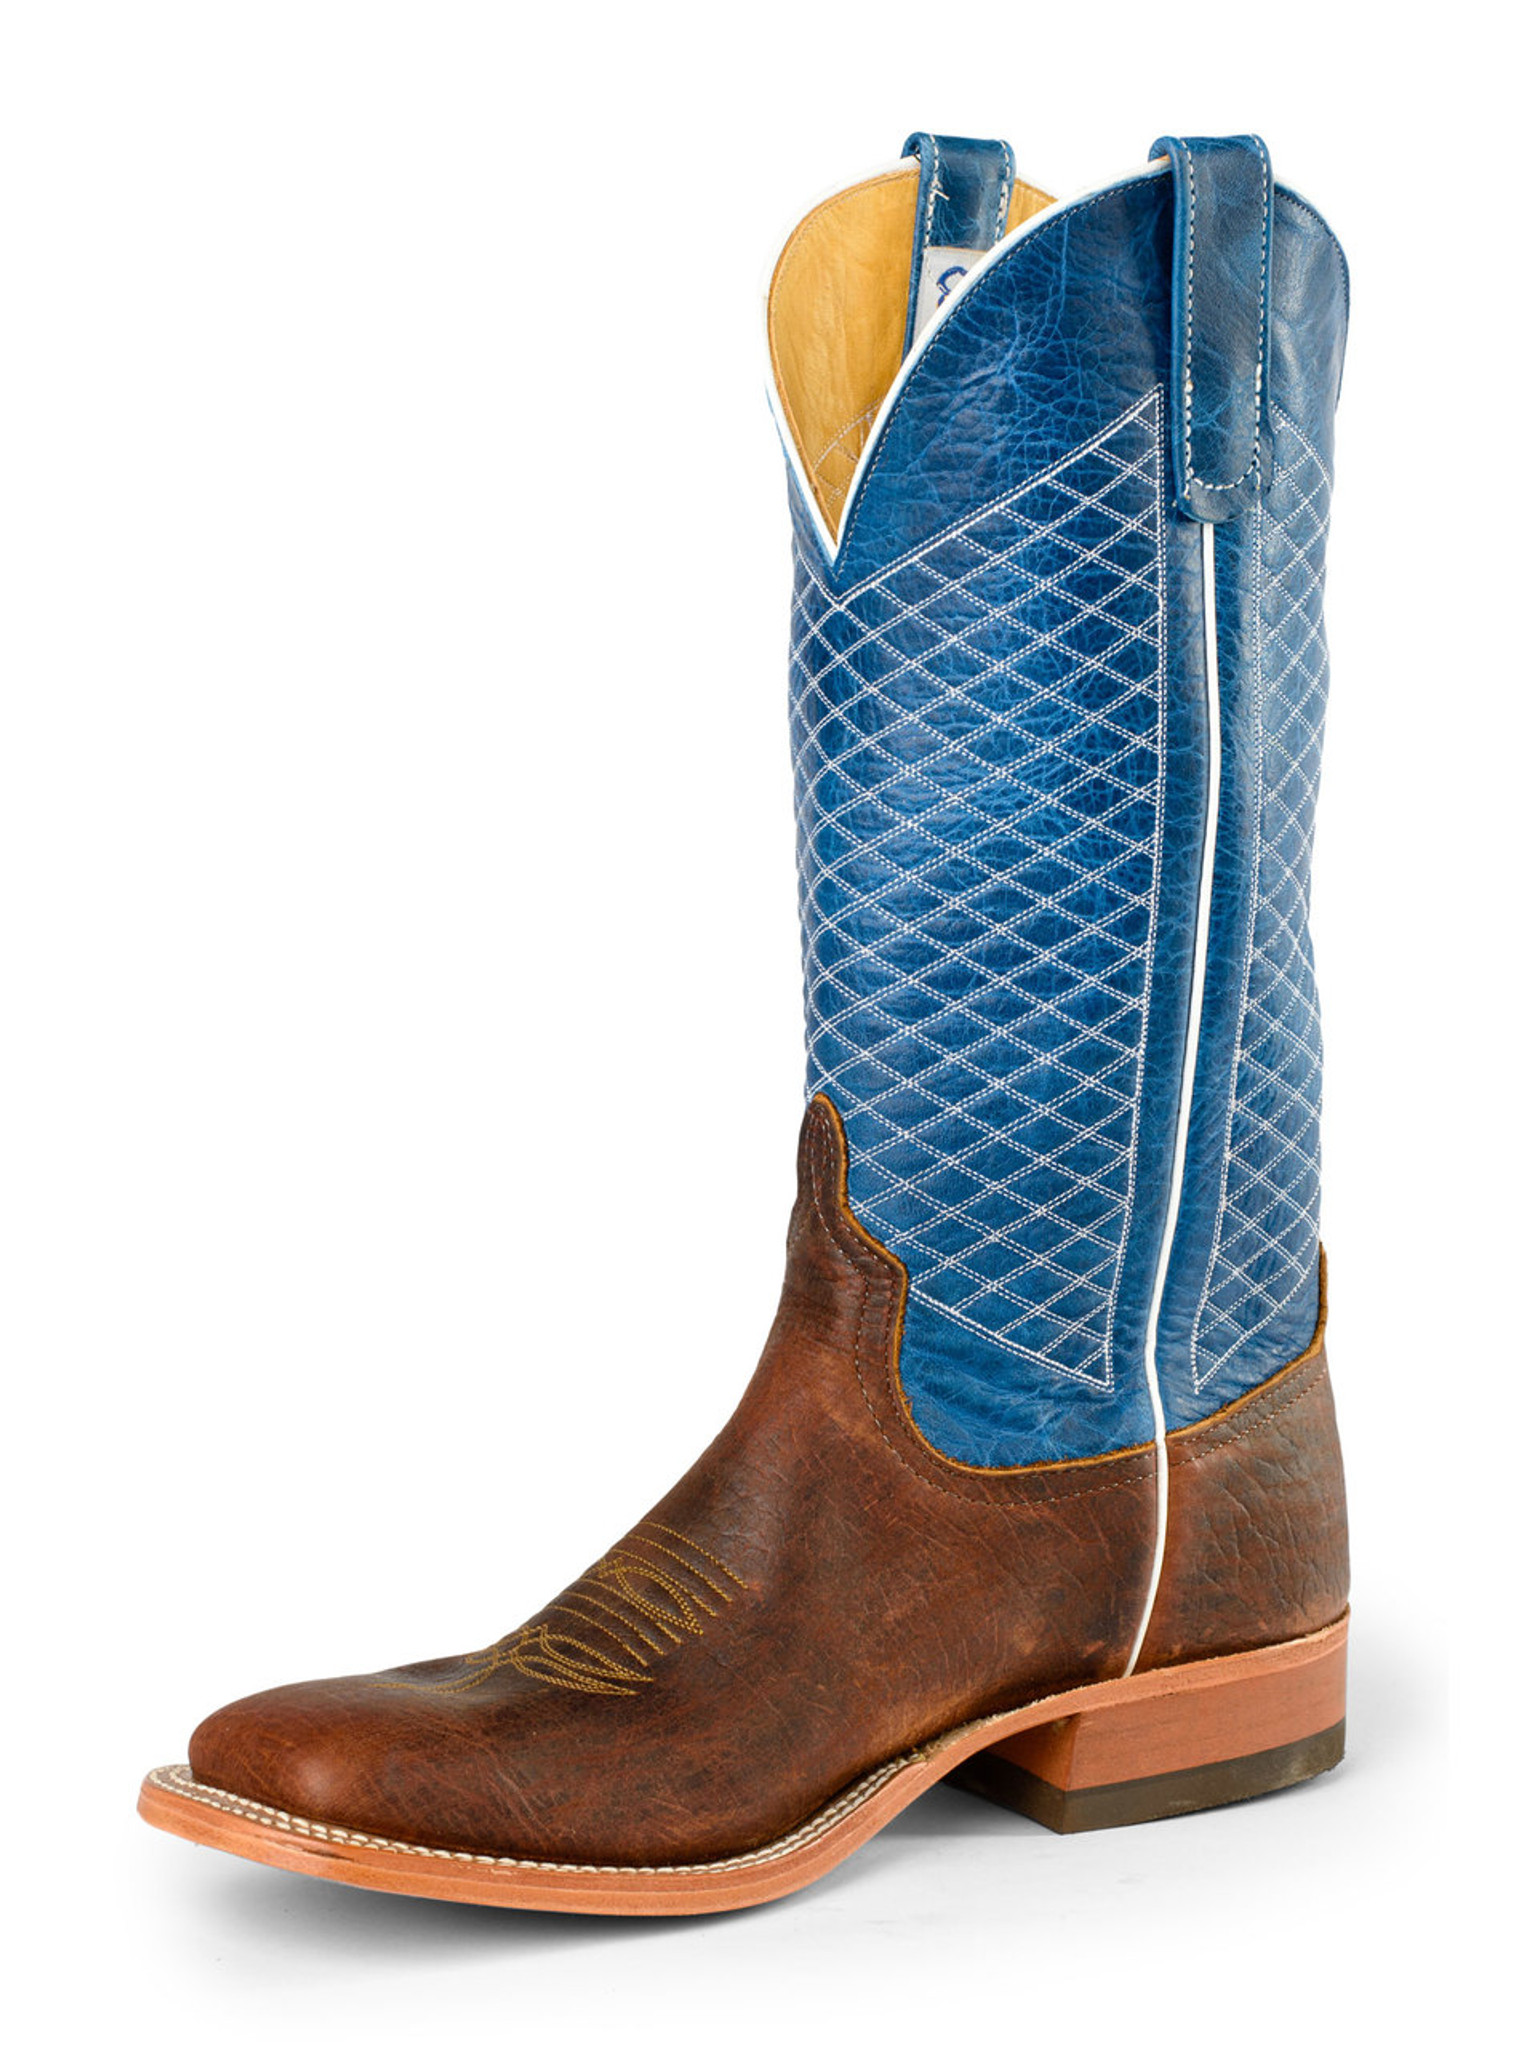 Men S Anderson Bean Boot Blue Chocolate Quilt Stitch Pattern Chick Elms Grand Entry Western Store And Rodeo Shop